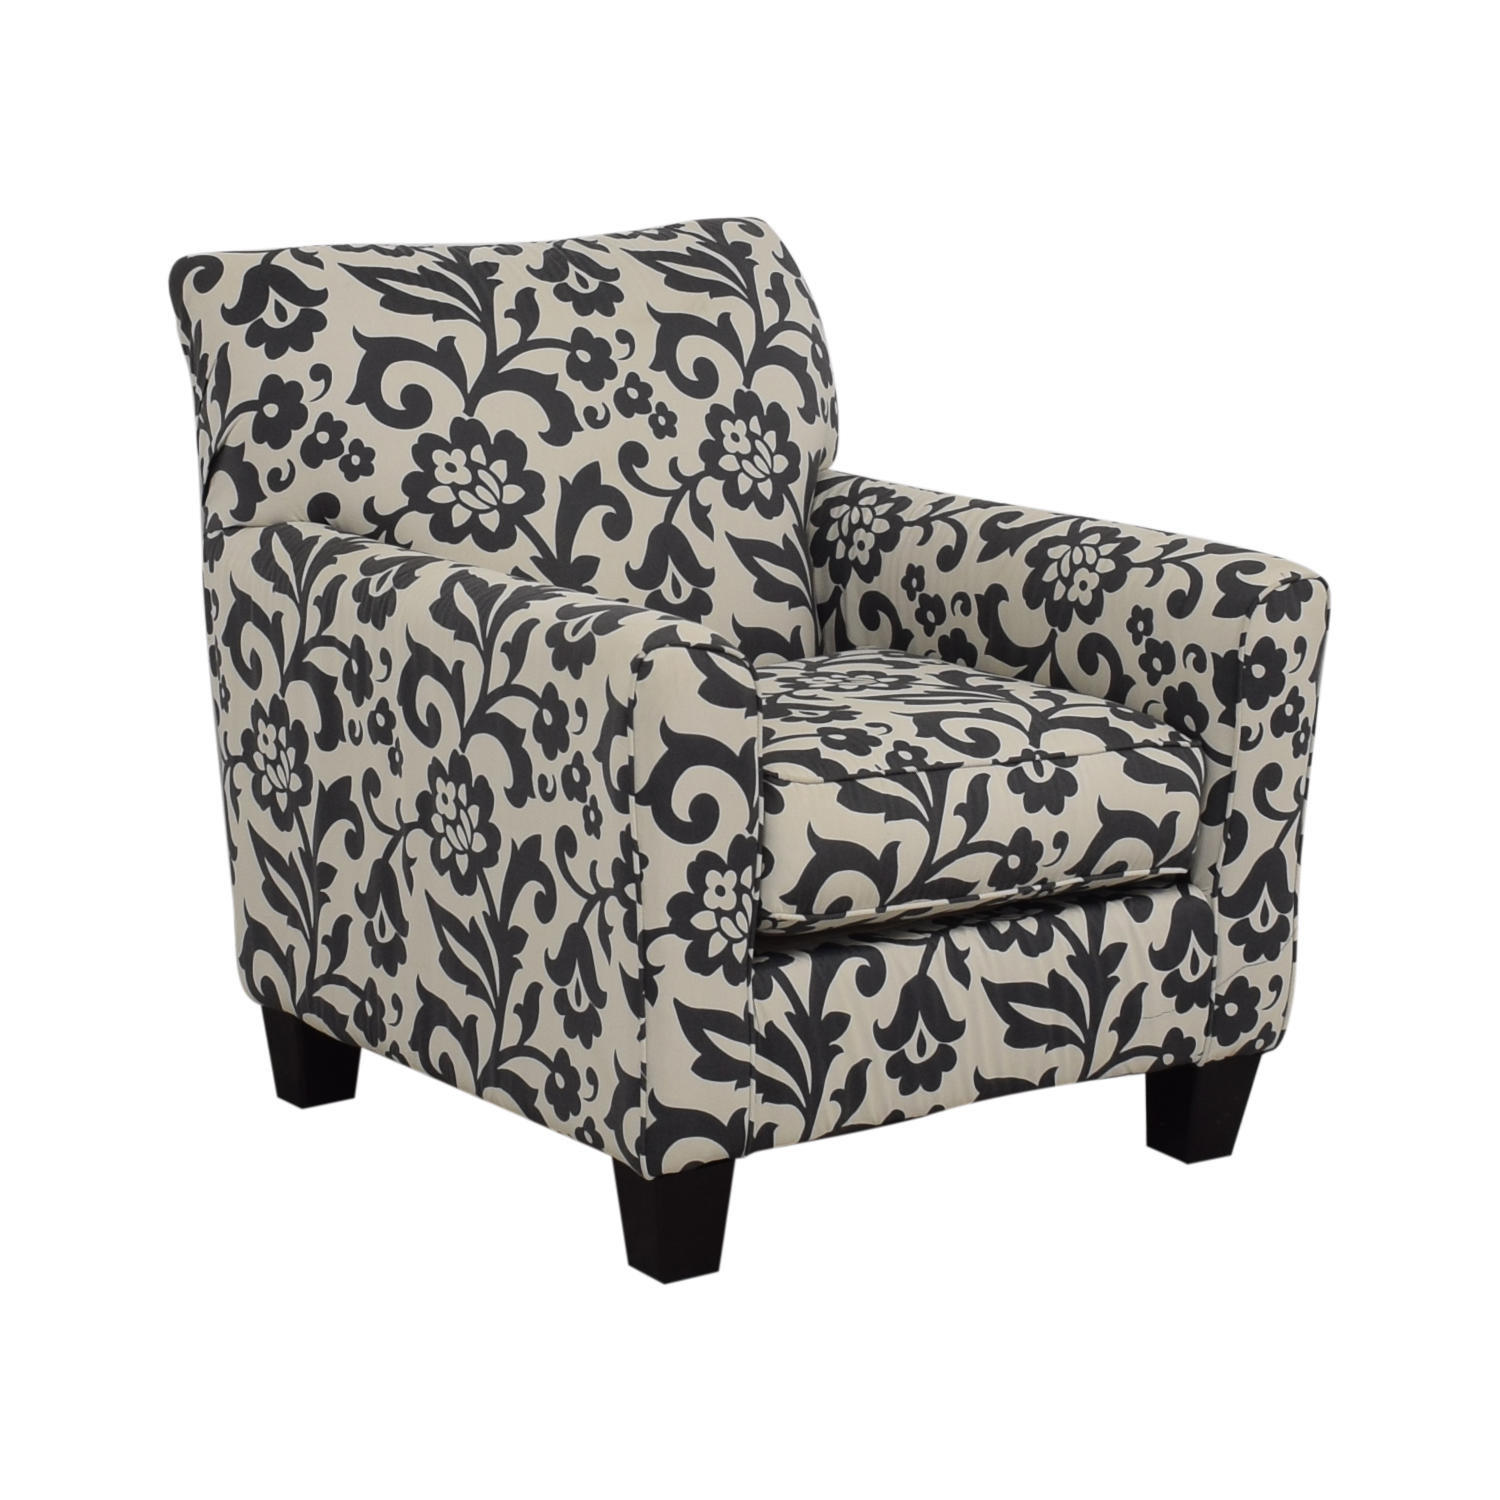 88 Off Ashley Furniture Ashley Furniture Floral Armchair Chairs